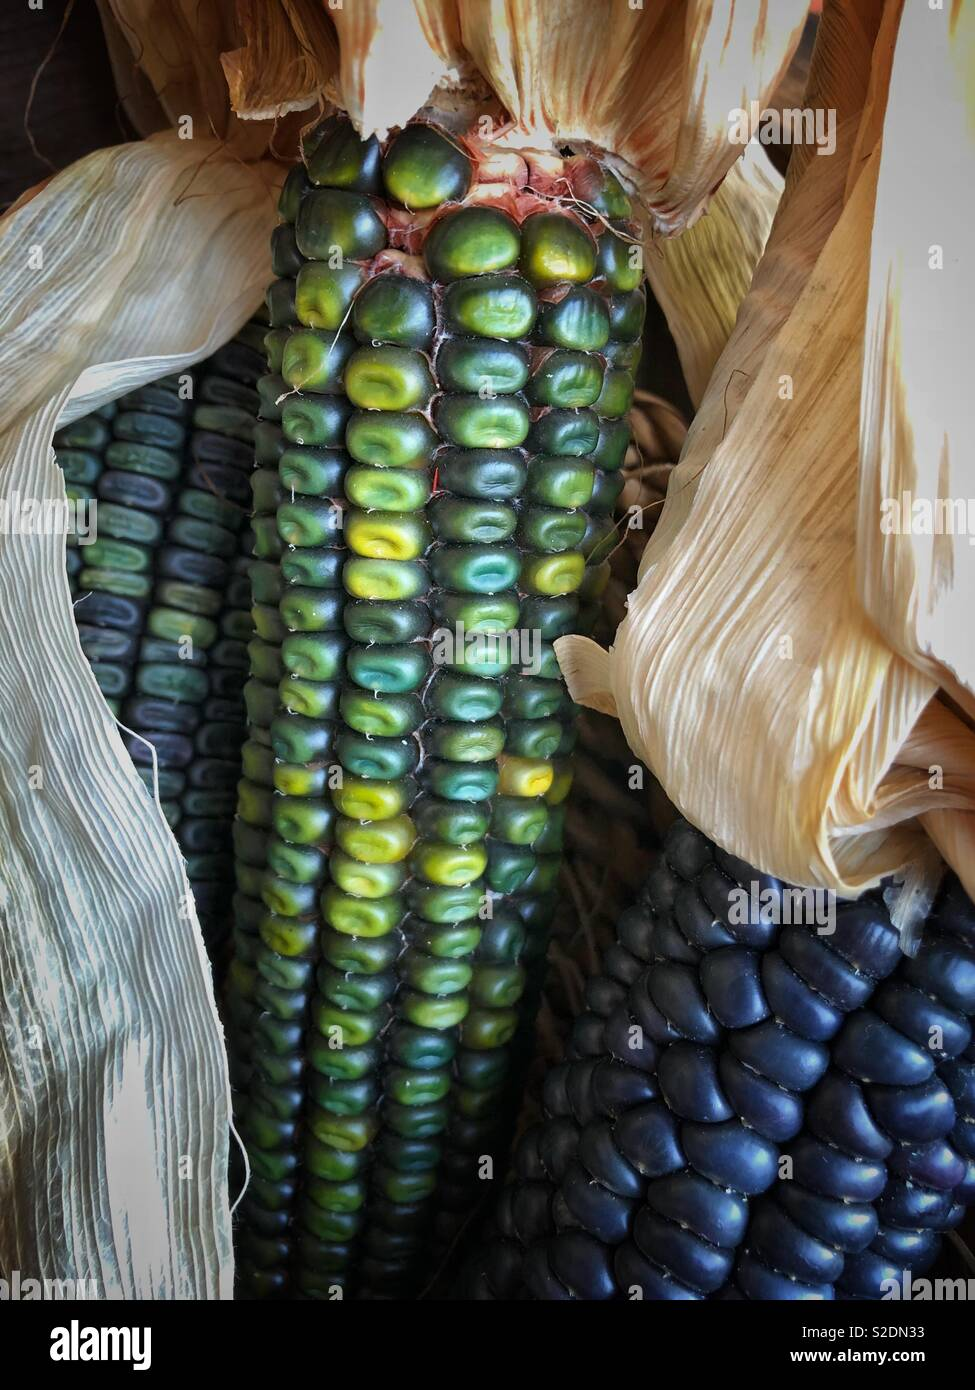 Indian corn at a market in Oakland, California. Stock Photo